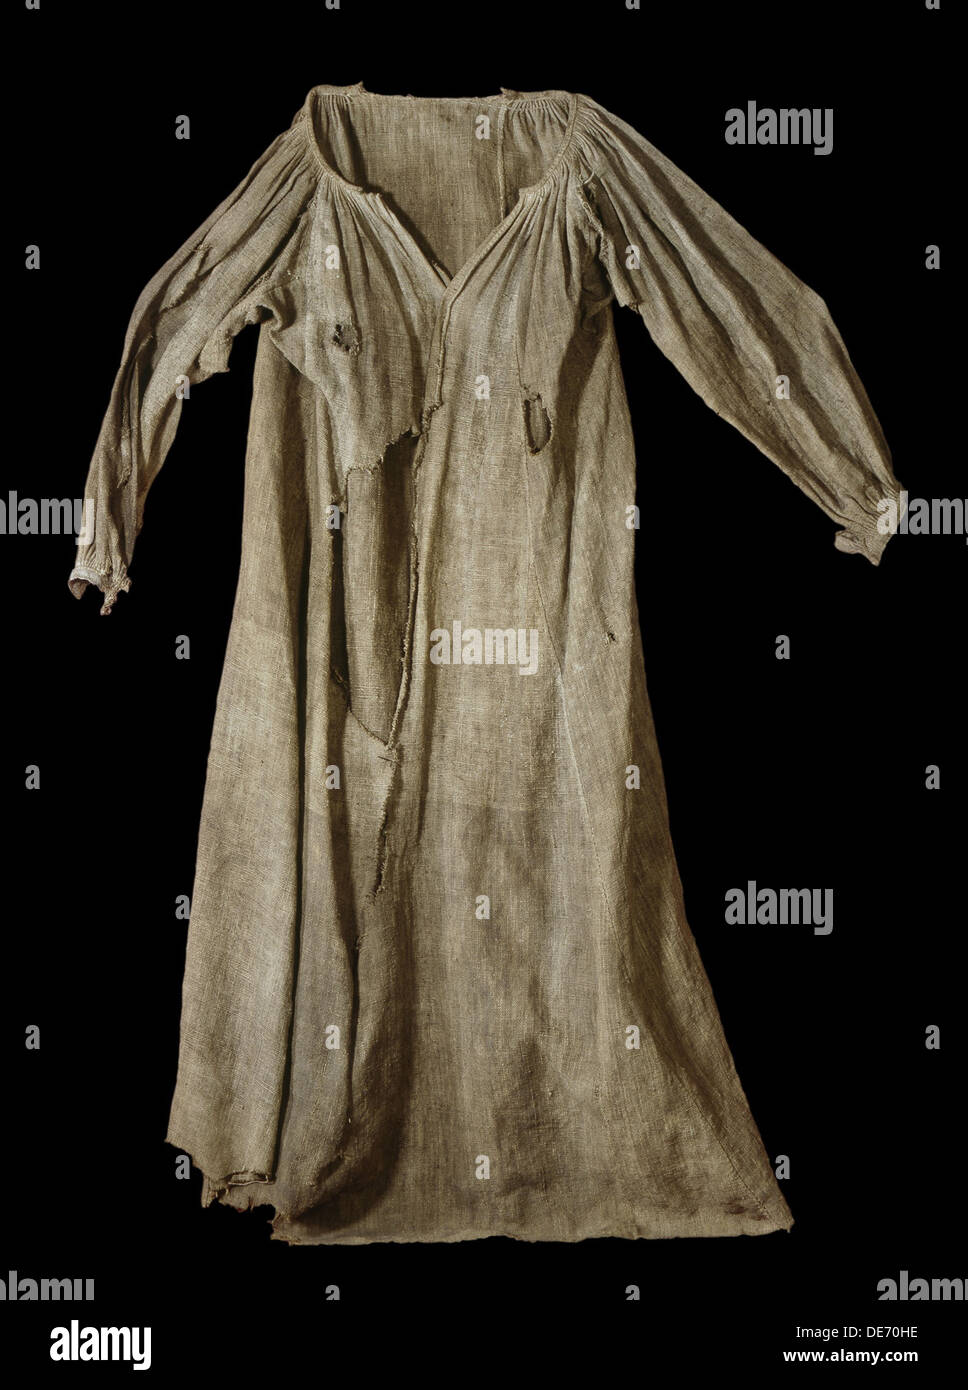 The Witch Gown of Veringenstadt, 1680. Artist: Objects of History - Stock Image